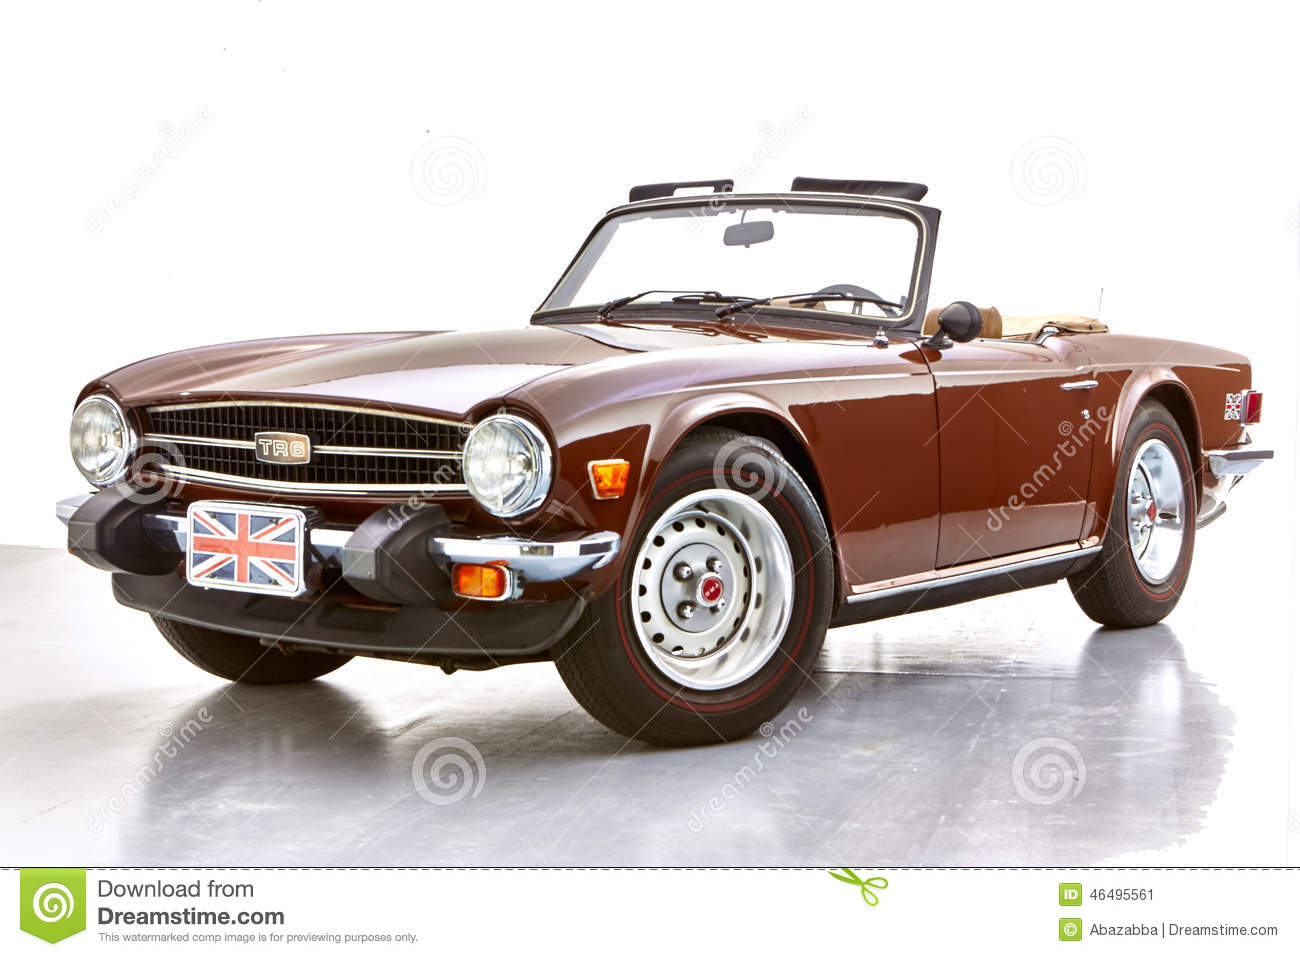 TR6 convertible. British sports car. Classic vintage sports car